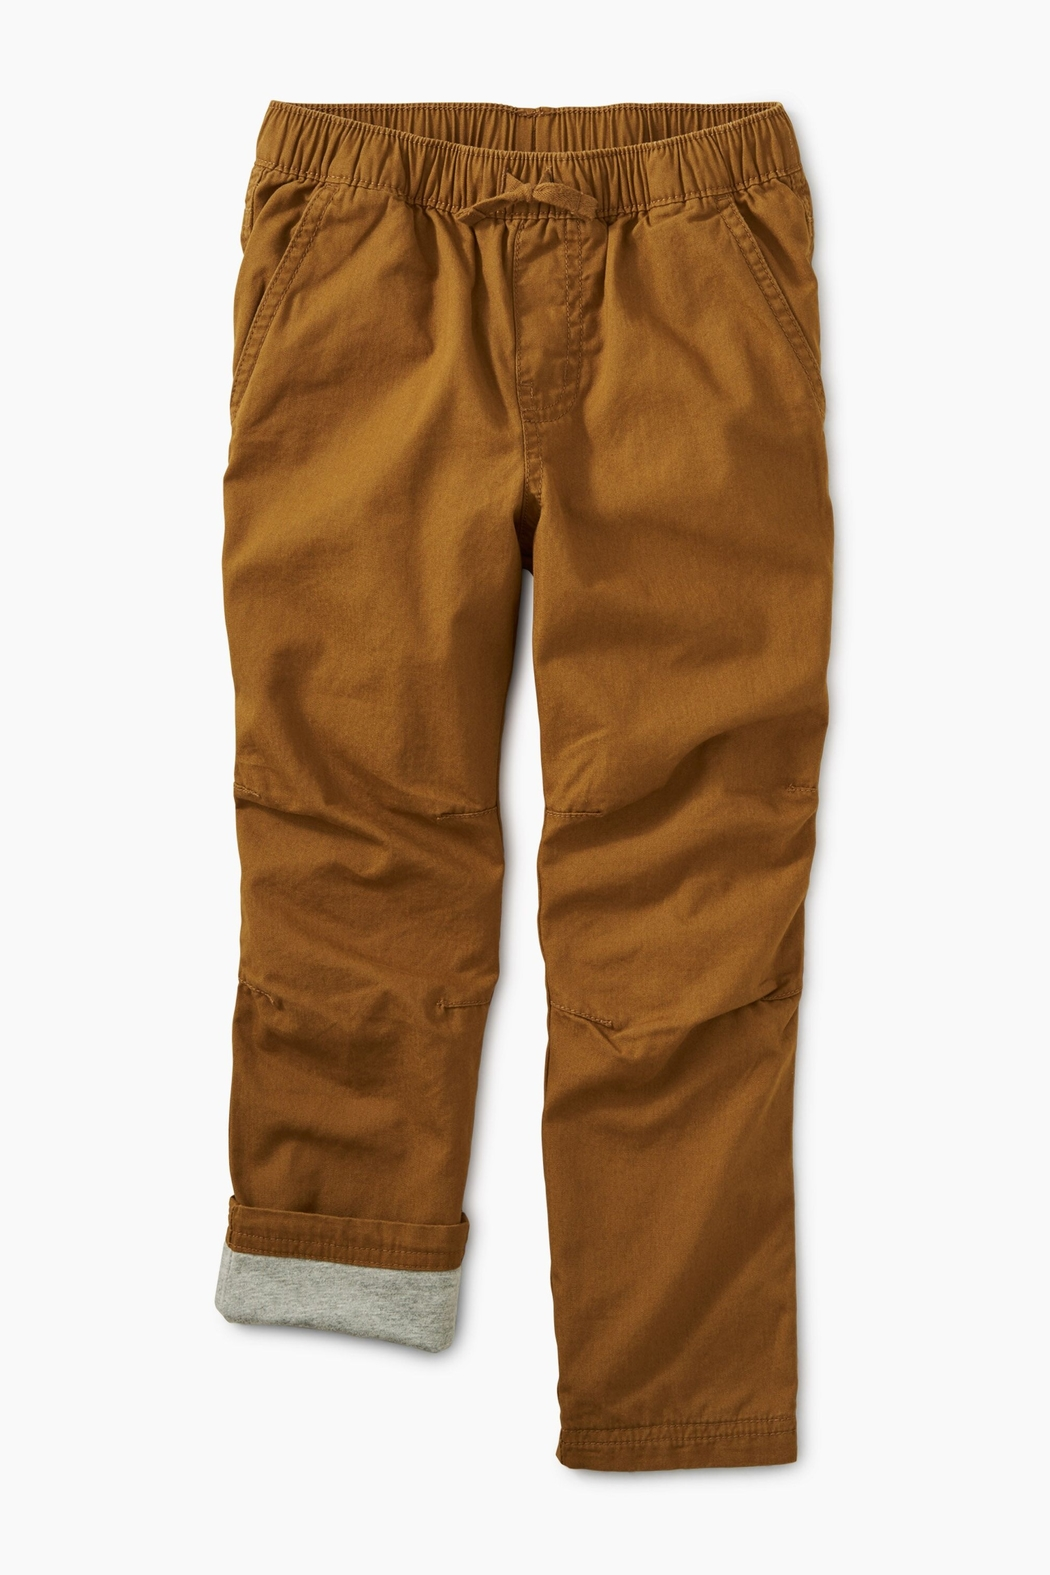 Tea Collection Cozy Jersey Lined Pant - Main Image